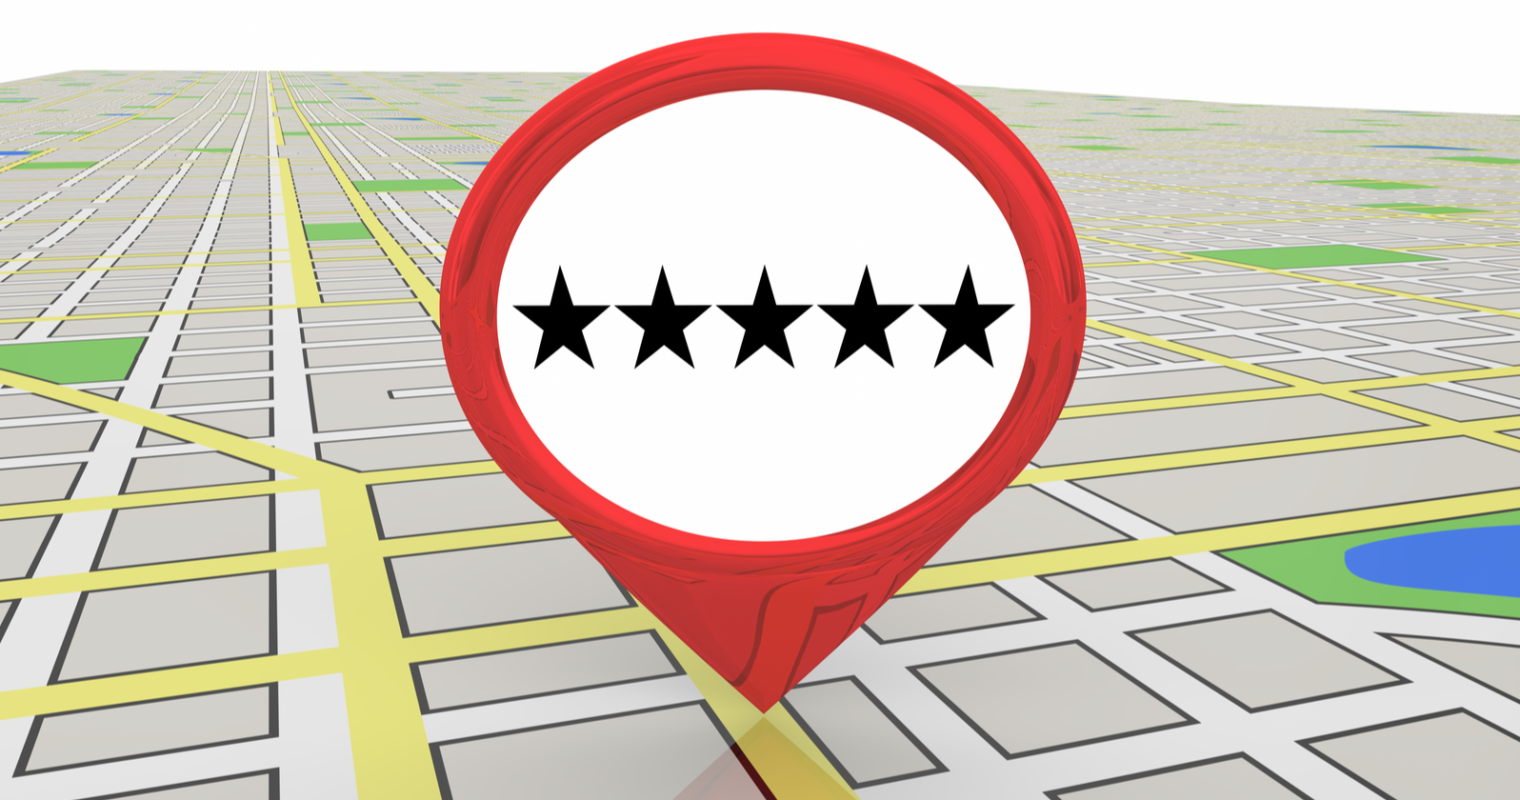 Google Local Search Study: Businesses on First Page Have an Avg. 4.4 Star Rating